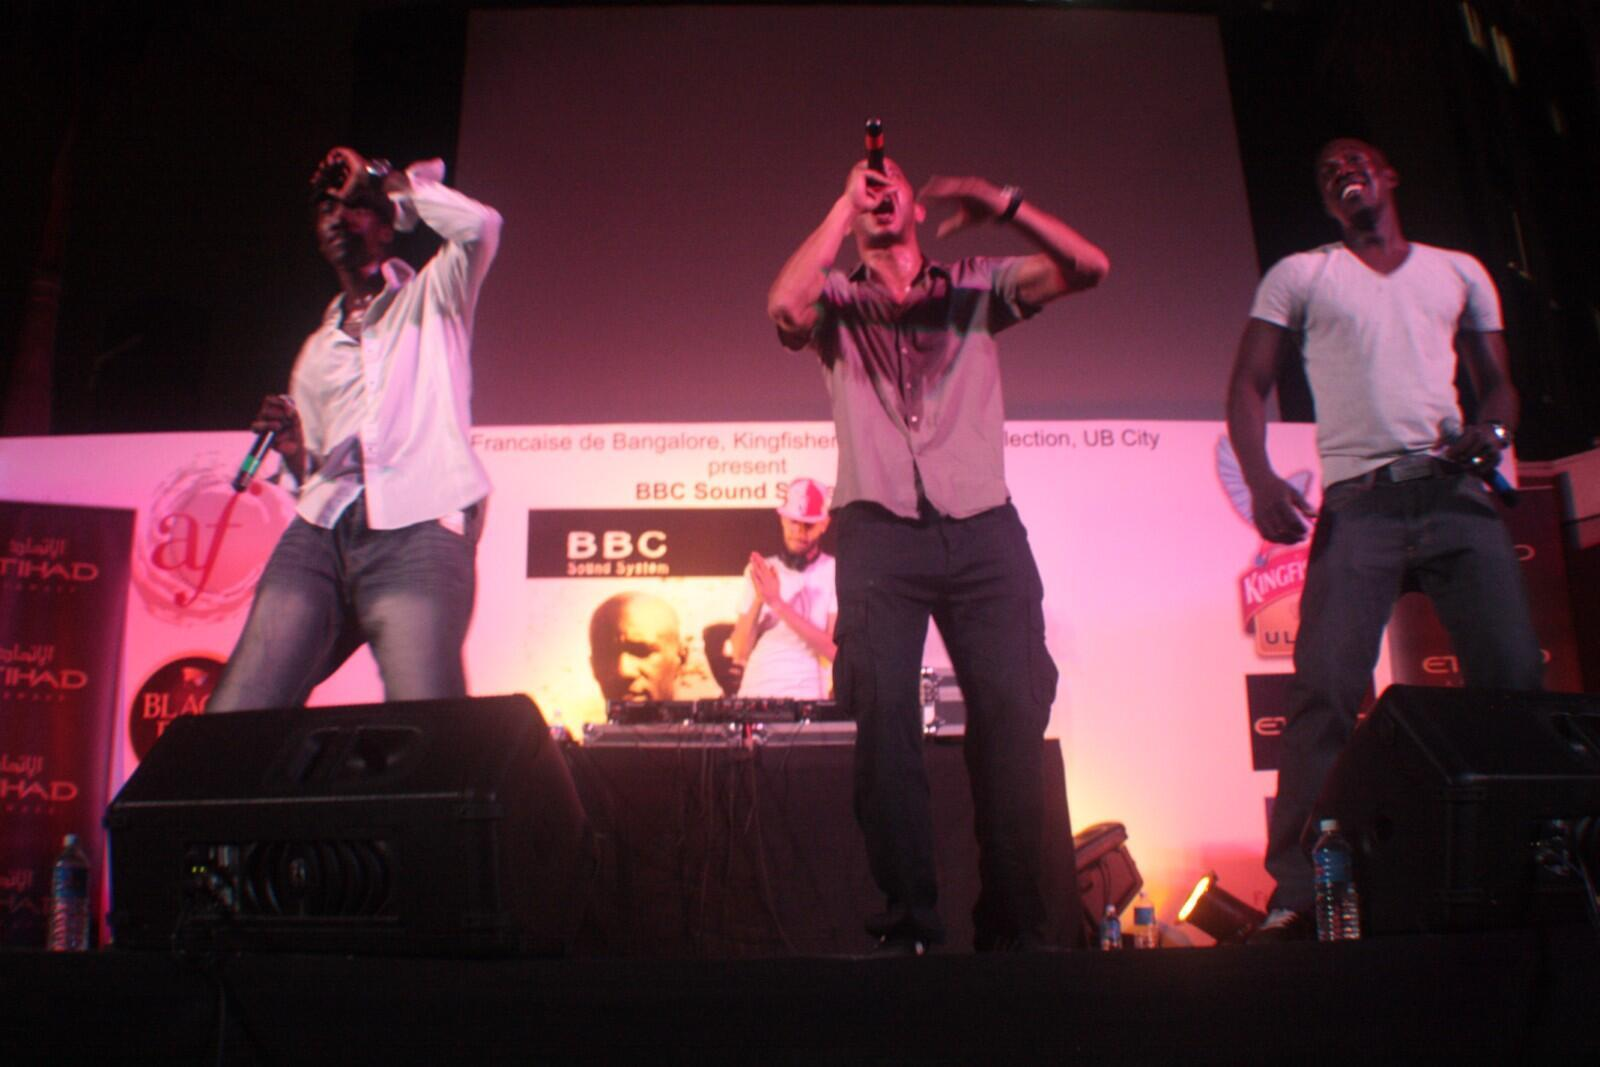 BBC sound system performing in India